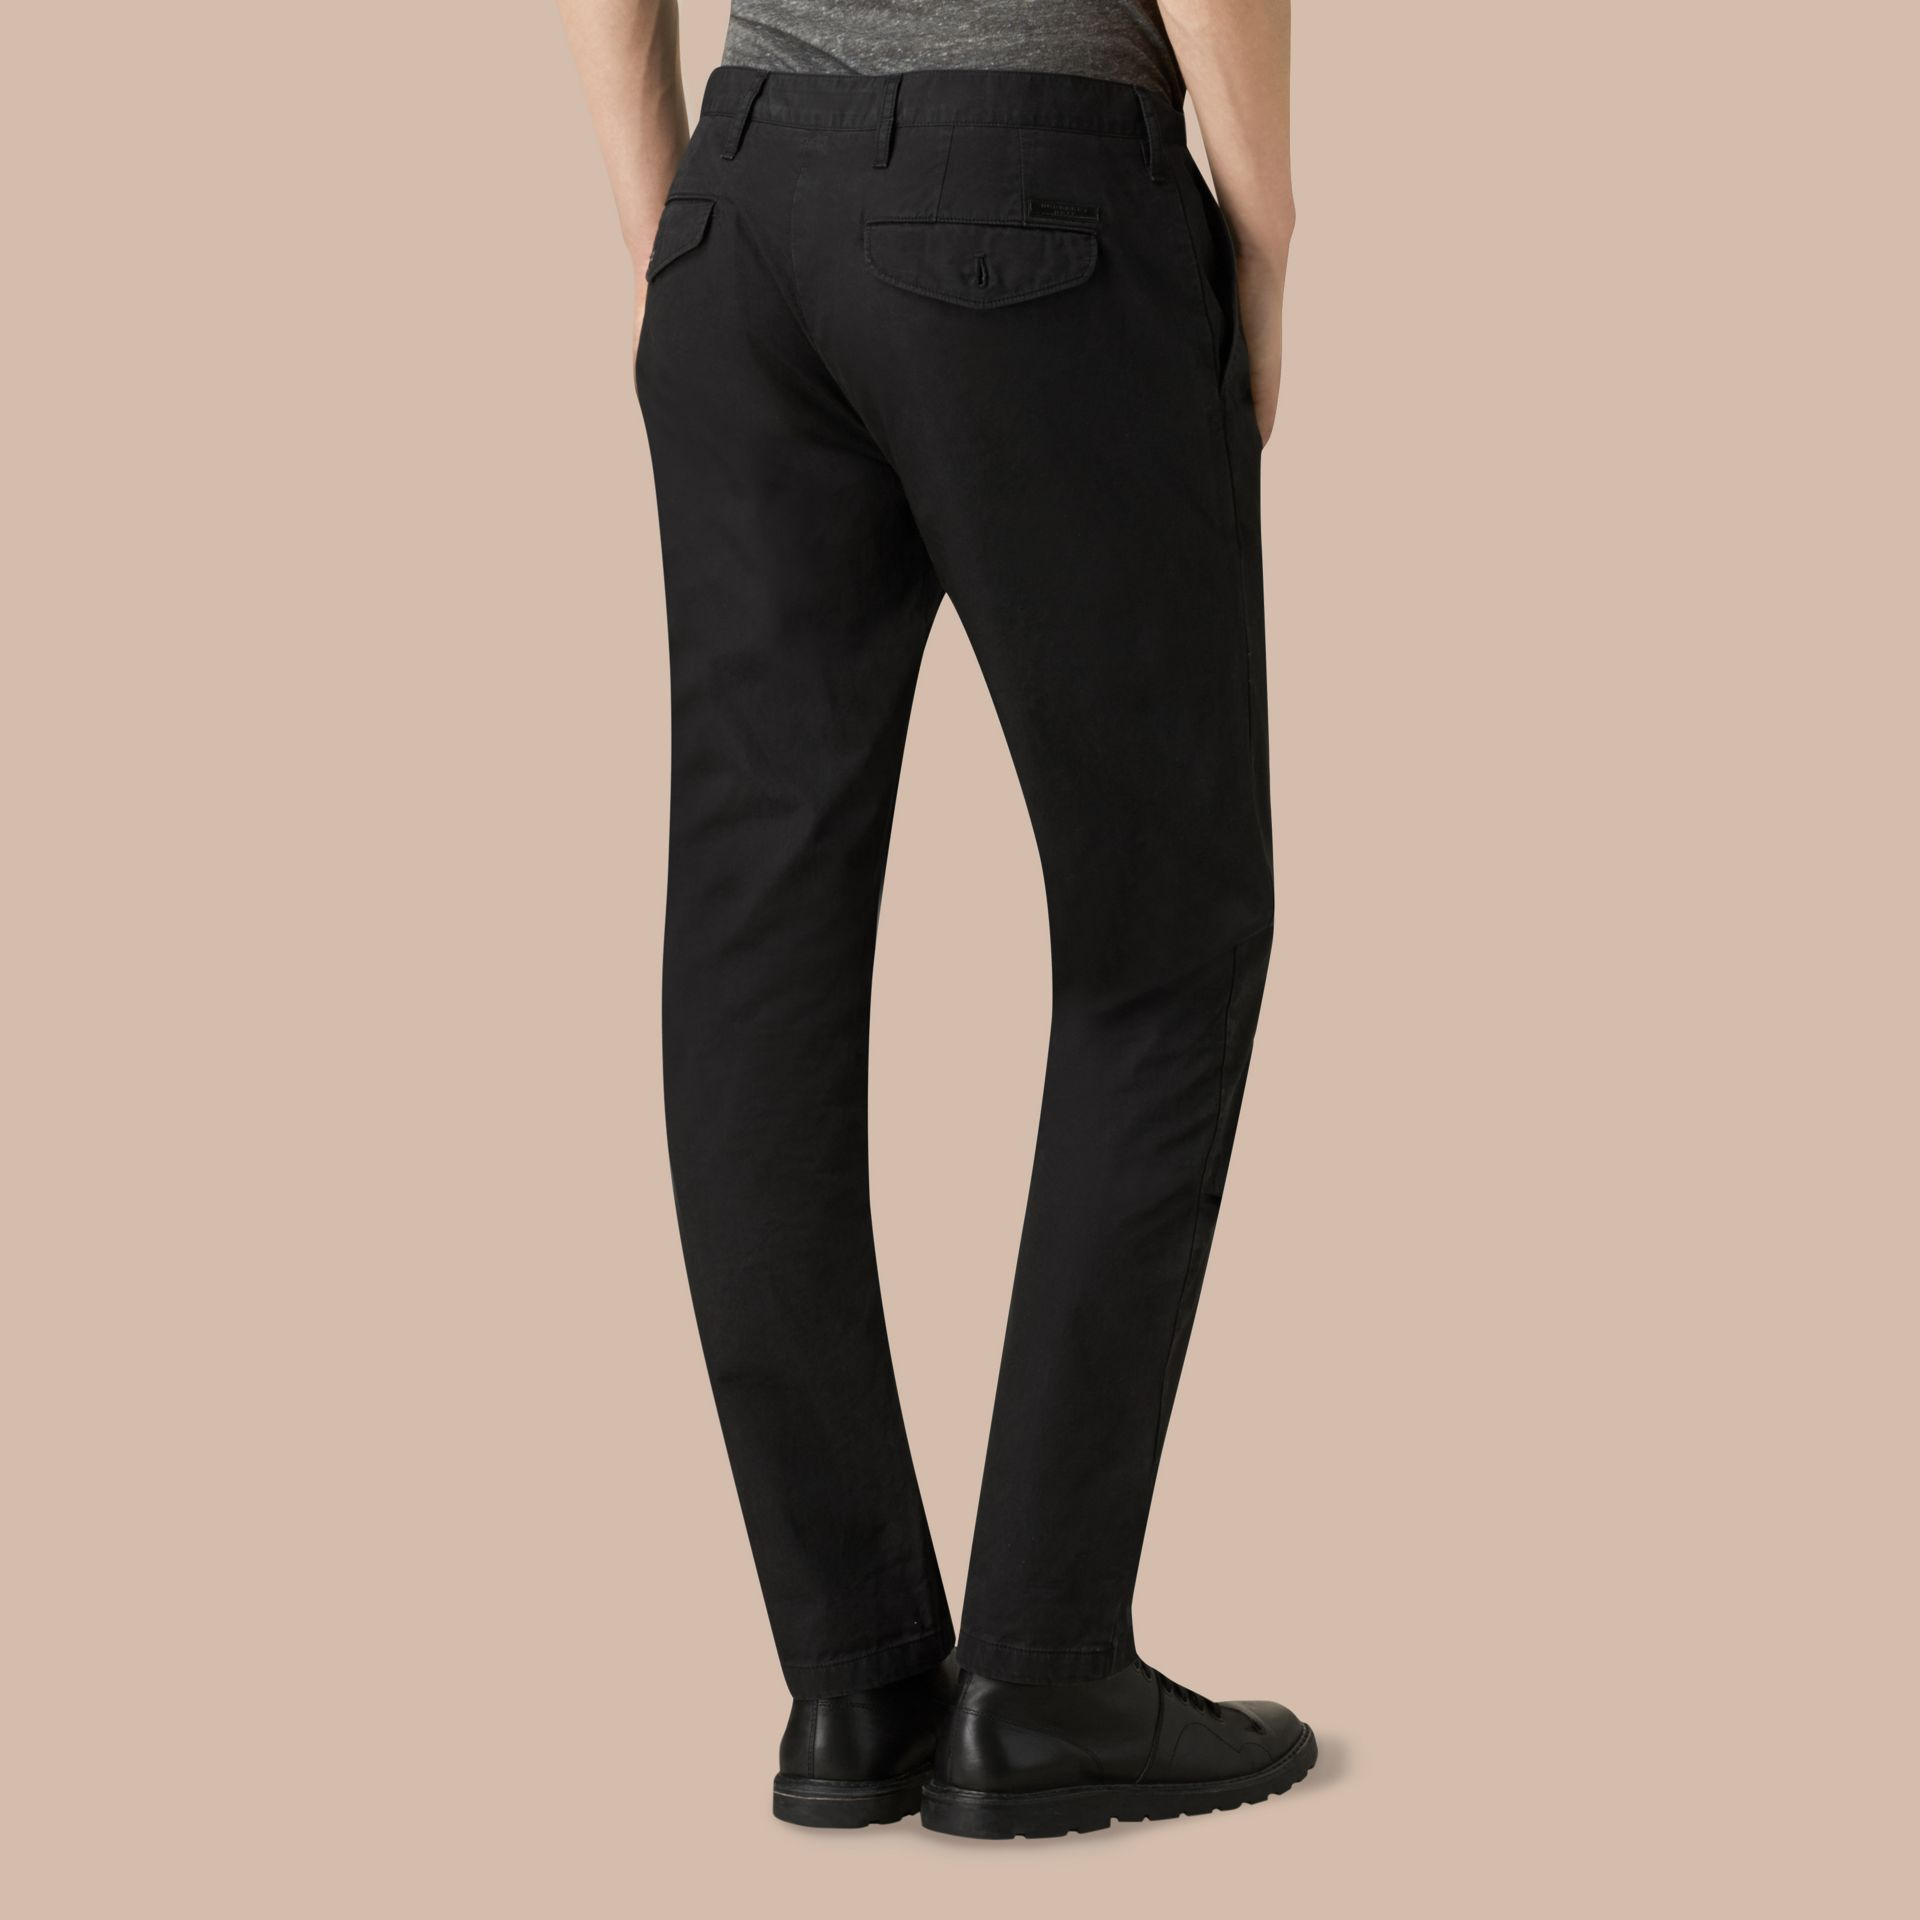 Pantalon chino slim en coton Noir - photo de la galerie 4